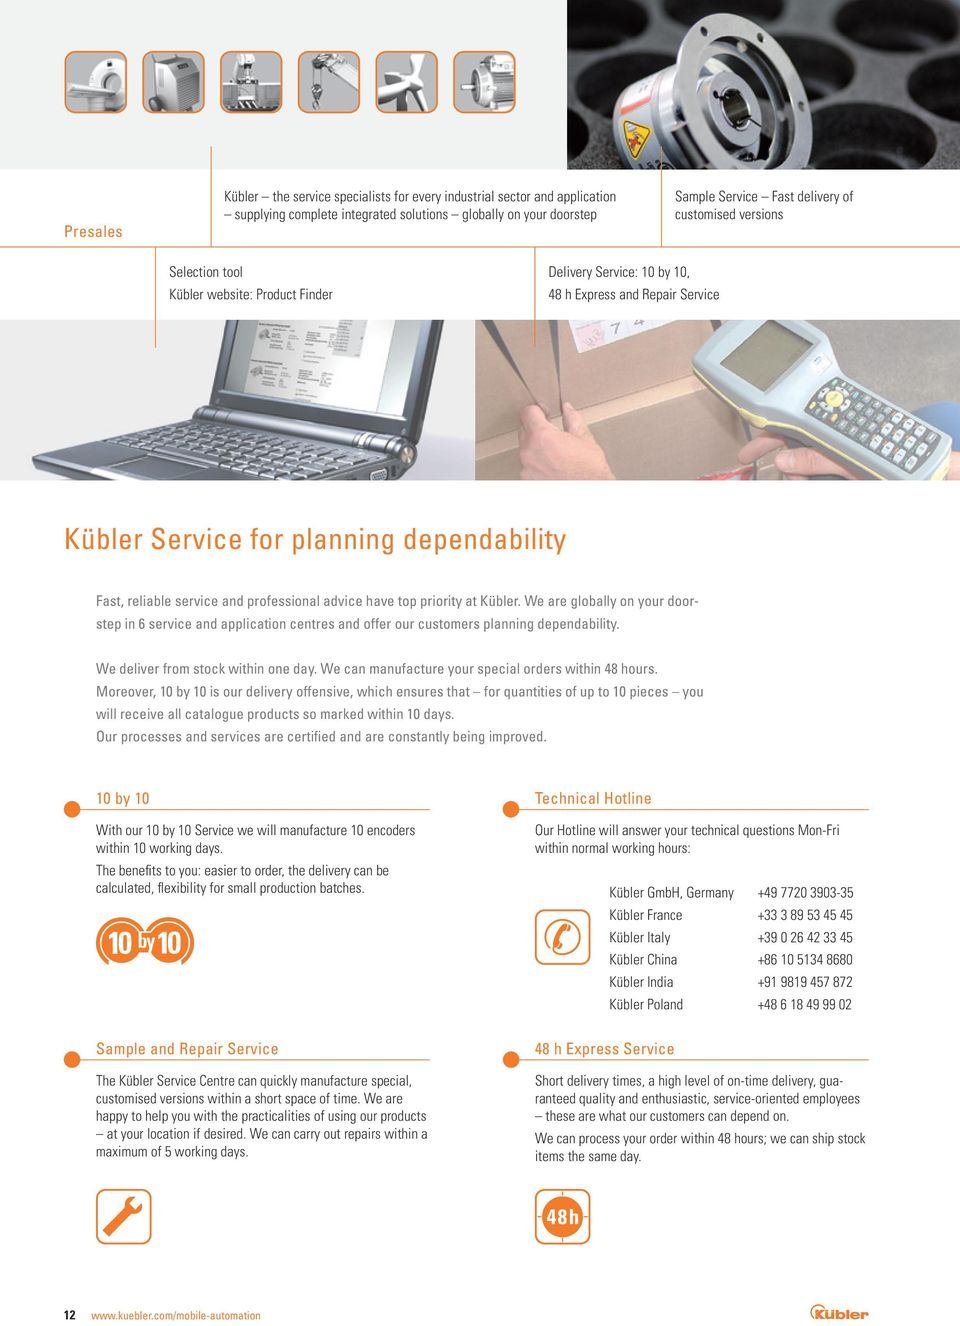 advice have top priority at Kübler. We are globally on your doorstep in 6 service and application centres and offer our customers planning dependability. We deliver from stock within one day.